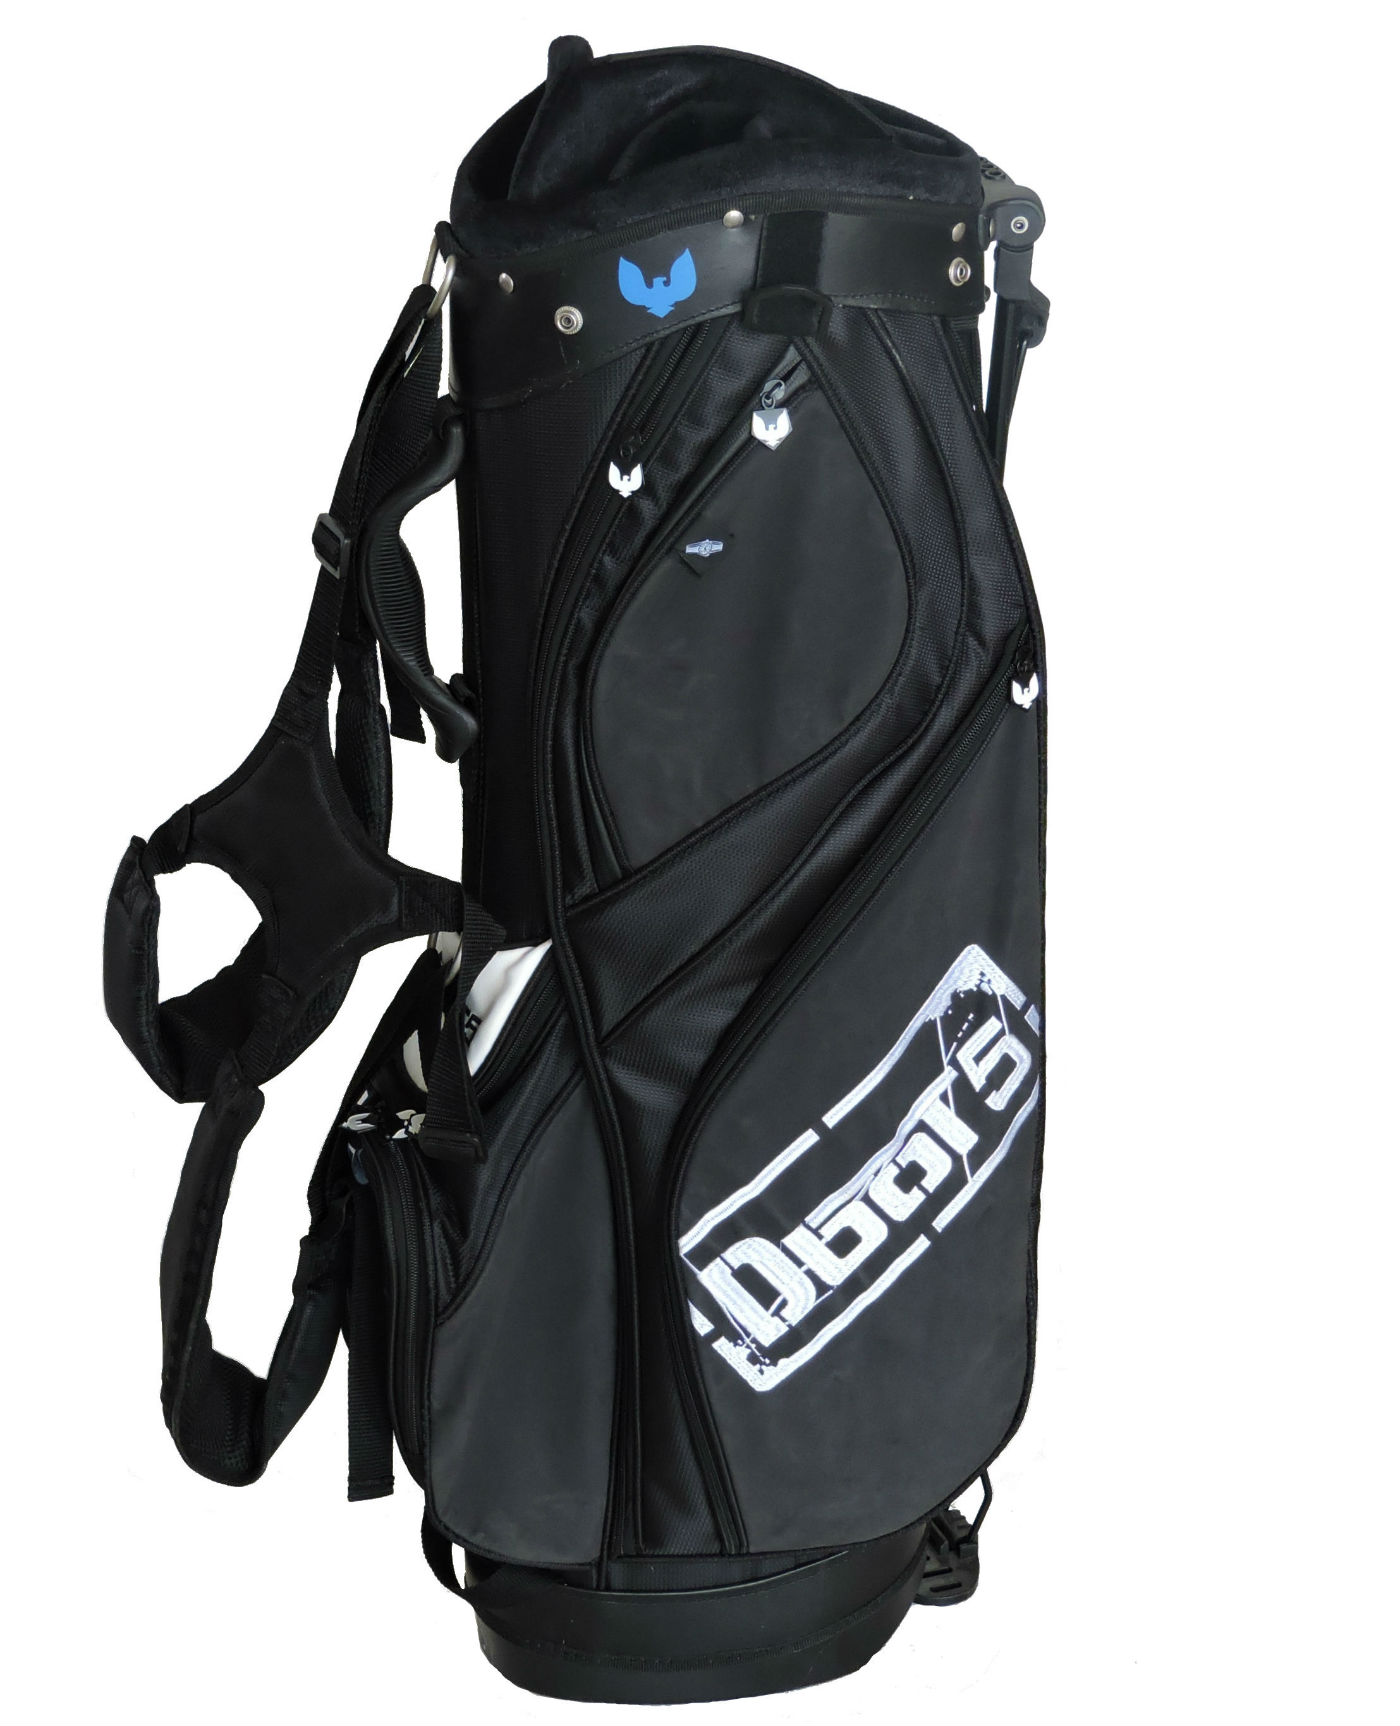 Sephlin - Sephlin Golf Bag (Black Velvet )